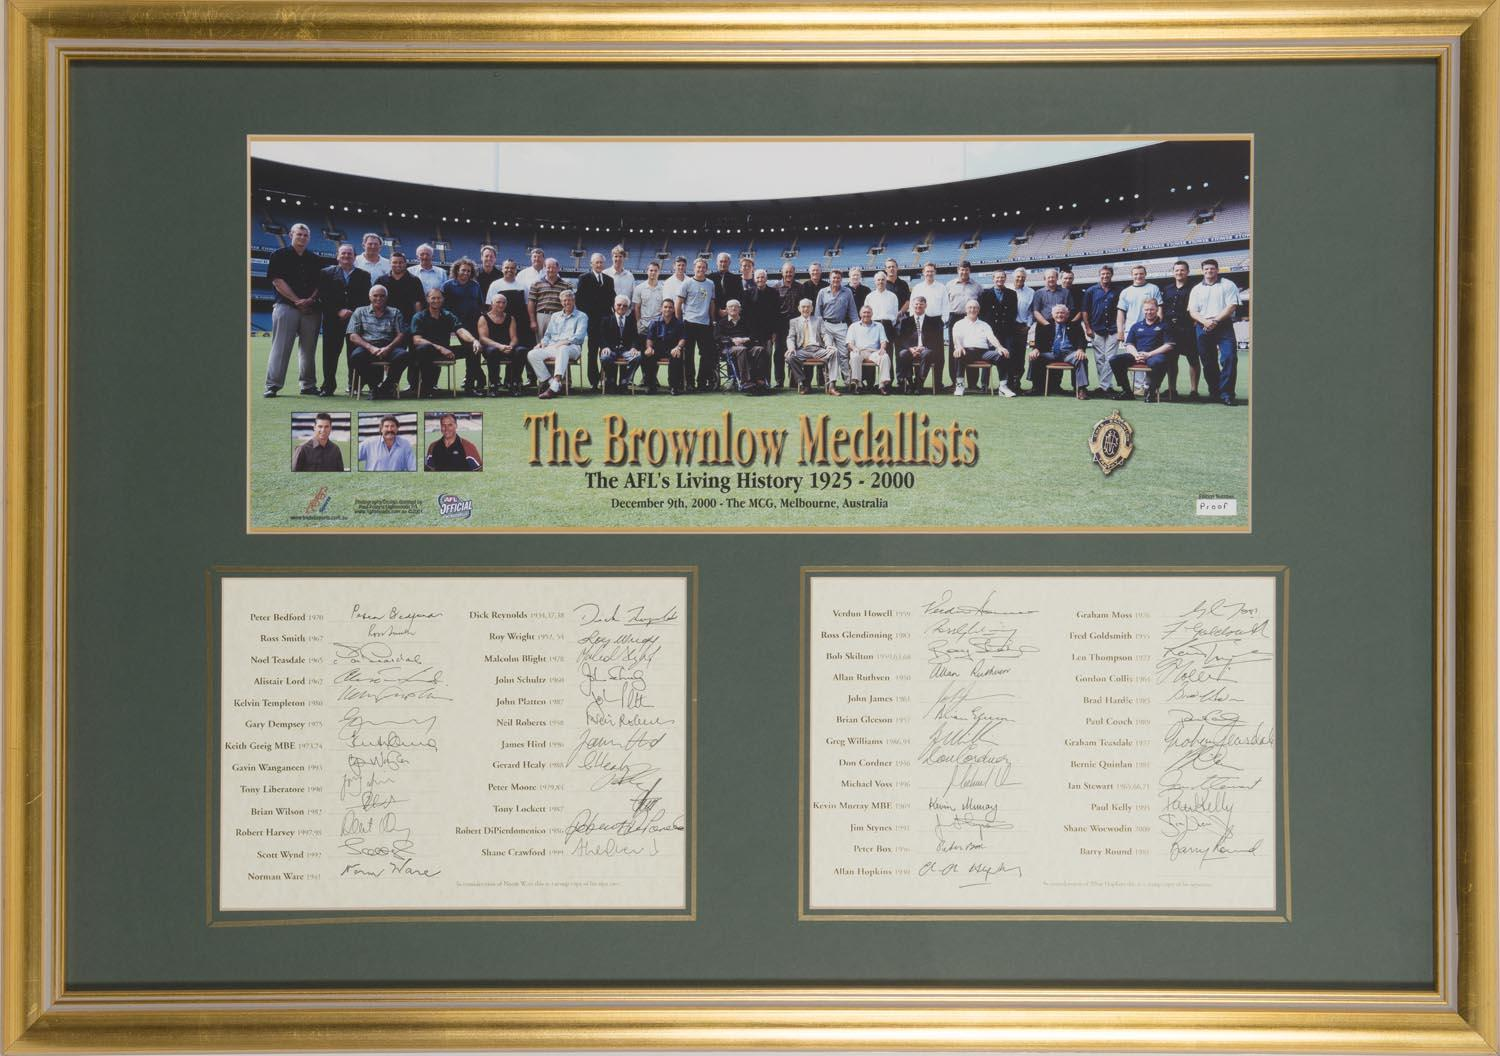 """The Brownlow Medallists"", Hand Signed by 49 including Greig, Skilton, Voss, Harvey, Blight, Liberatore, Williams"